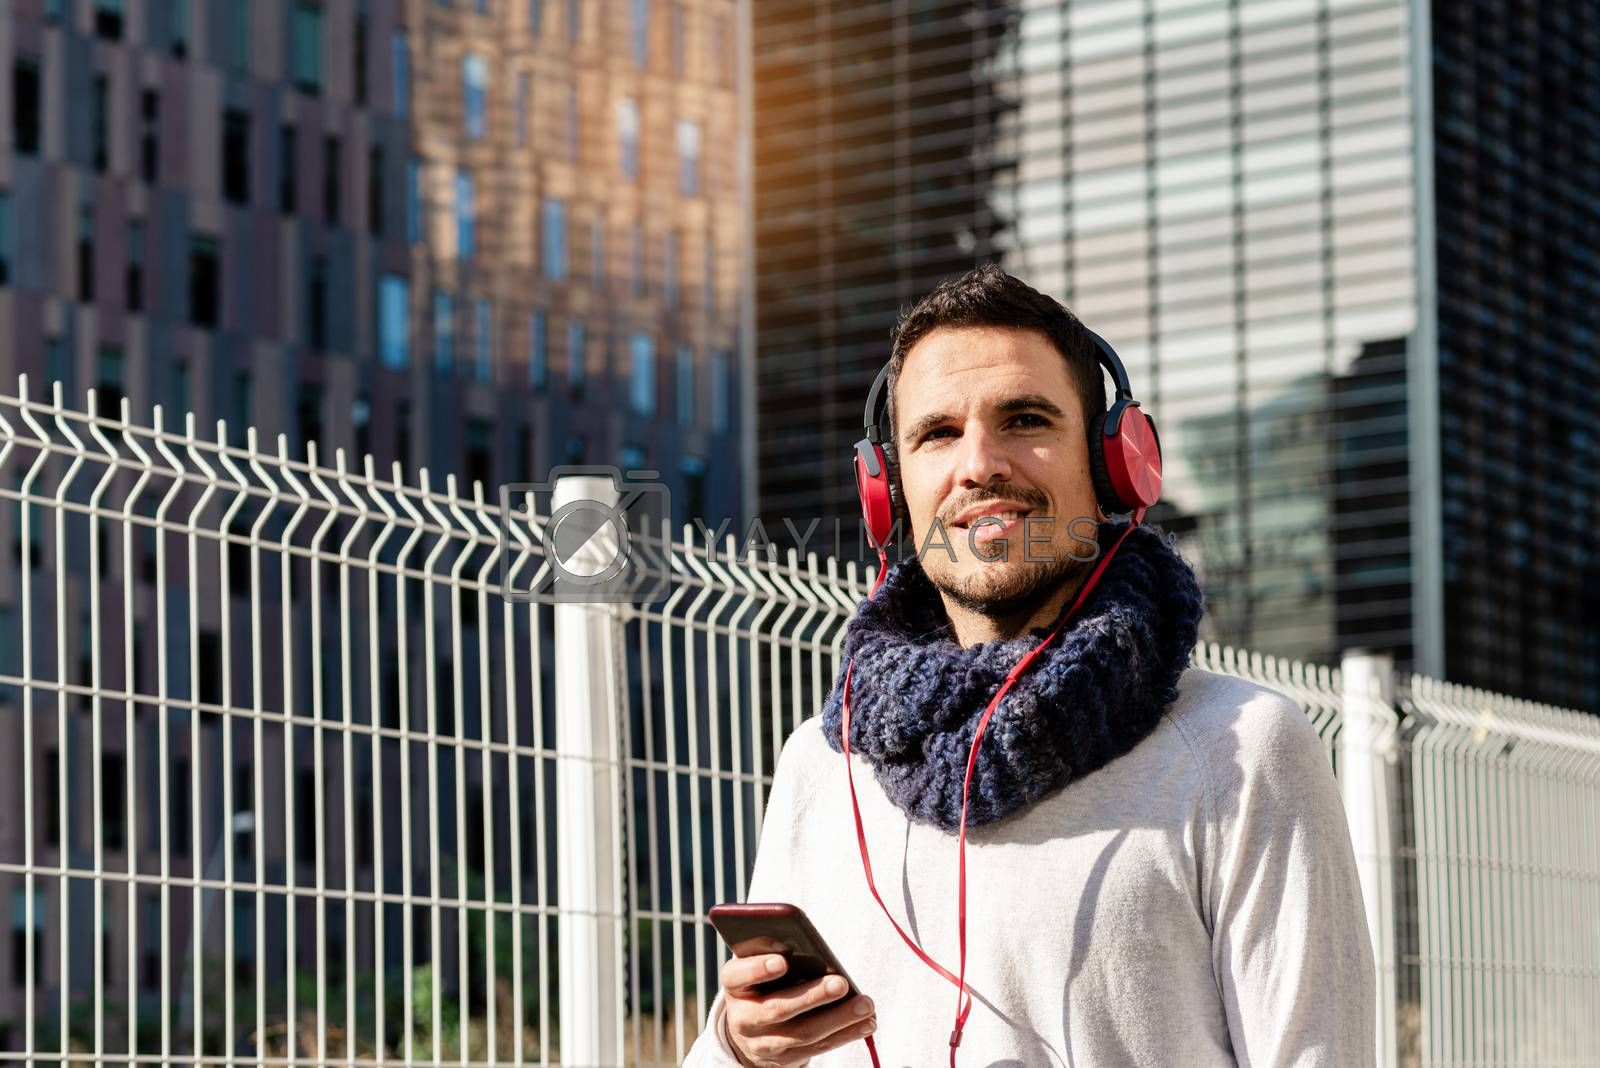 Young bearded male with headphones and holding smartphone while walking against skyscrapers in sunny day by raferto1973